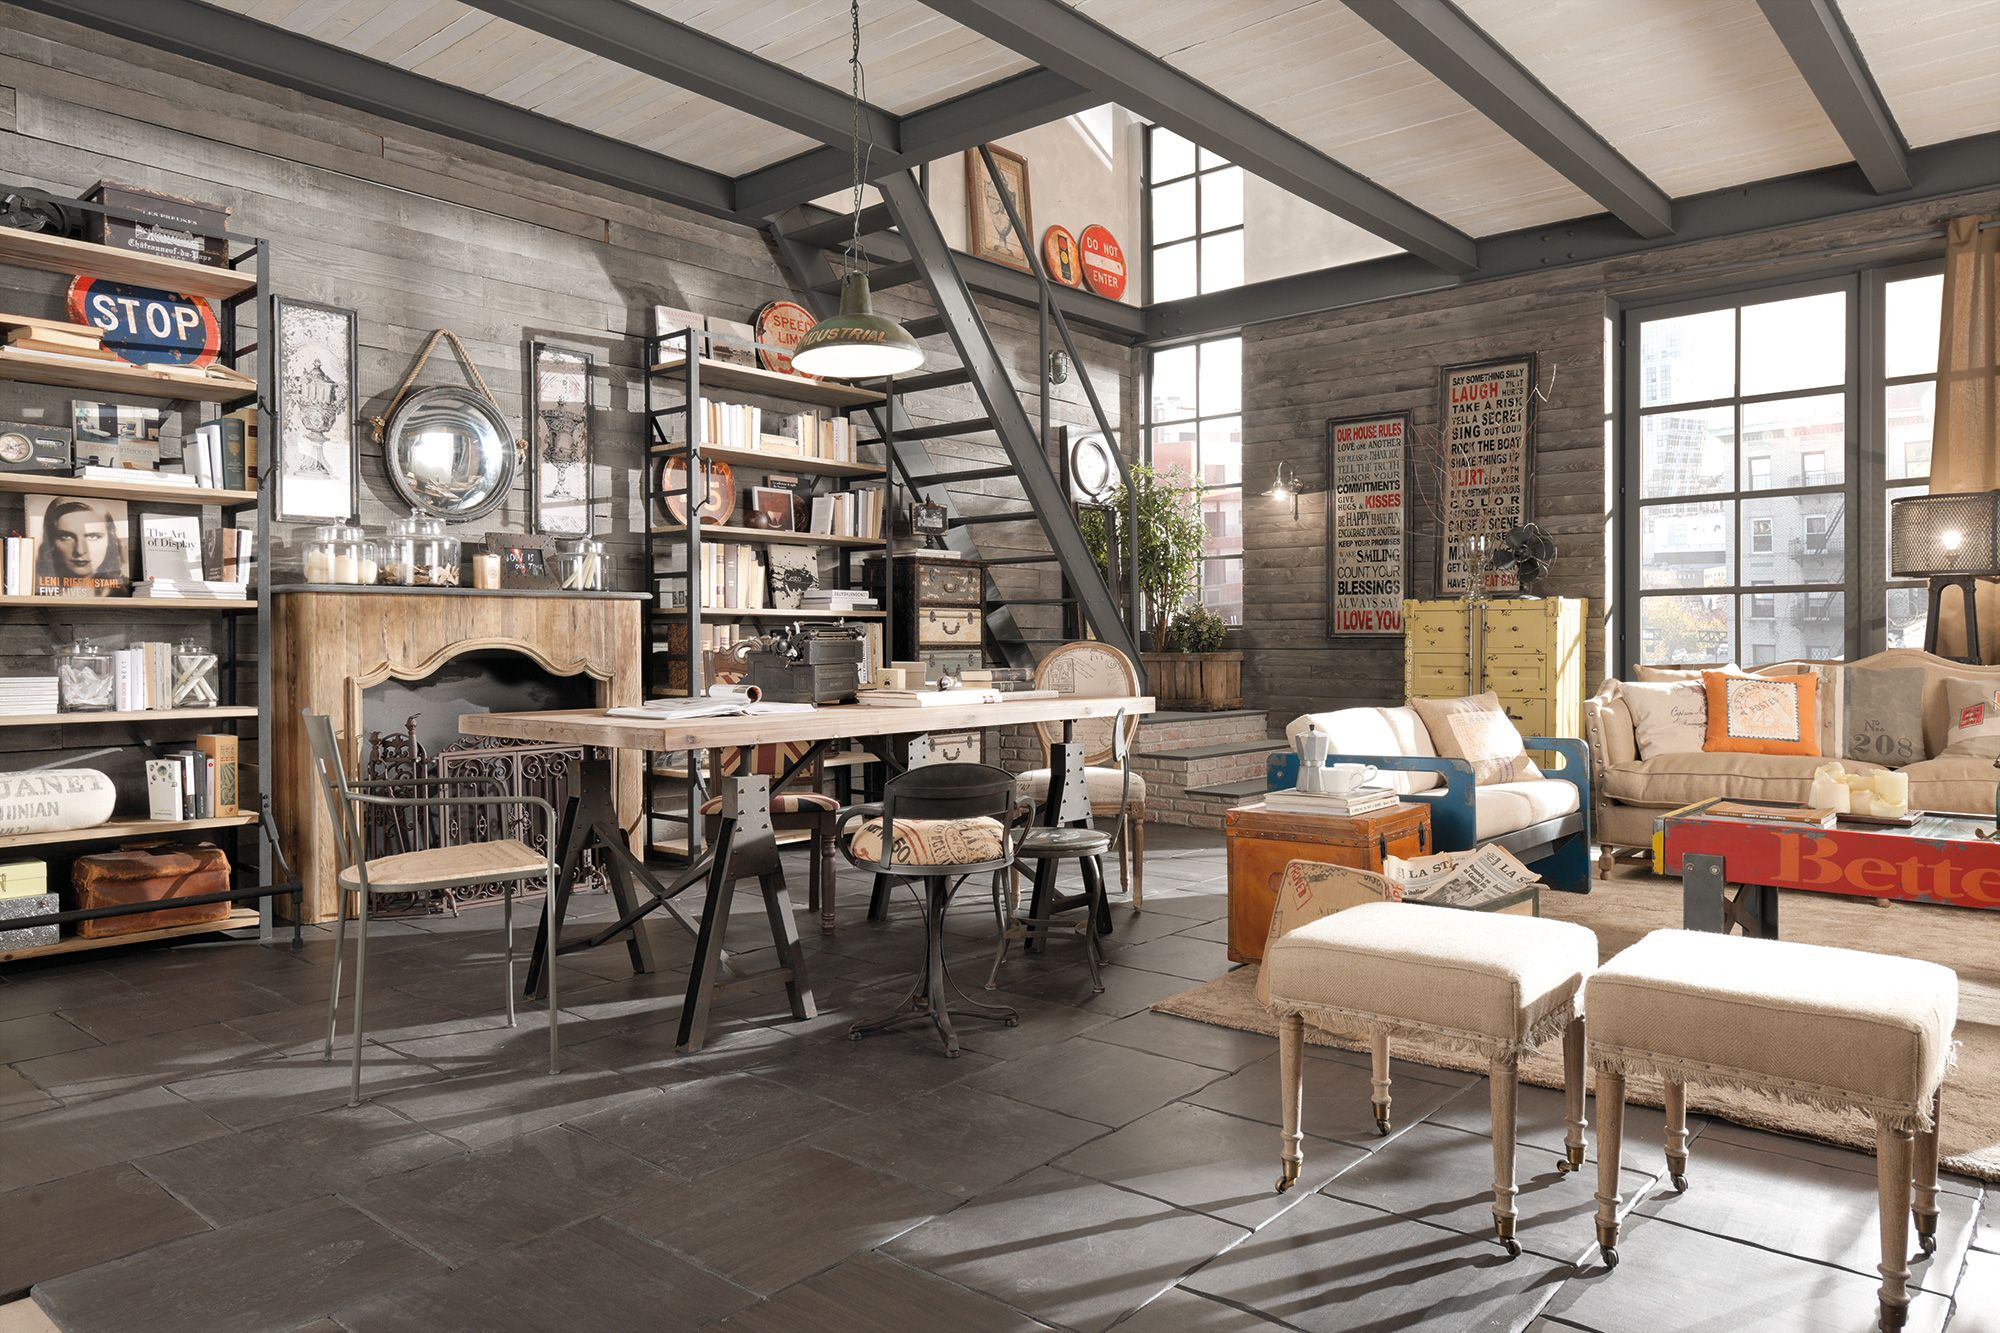 Arredamento country vintage industrial loft urban for Negozi industrial